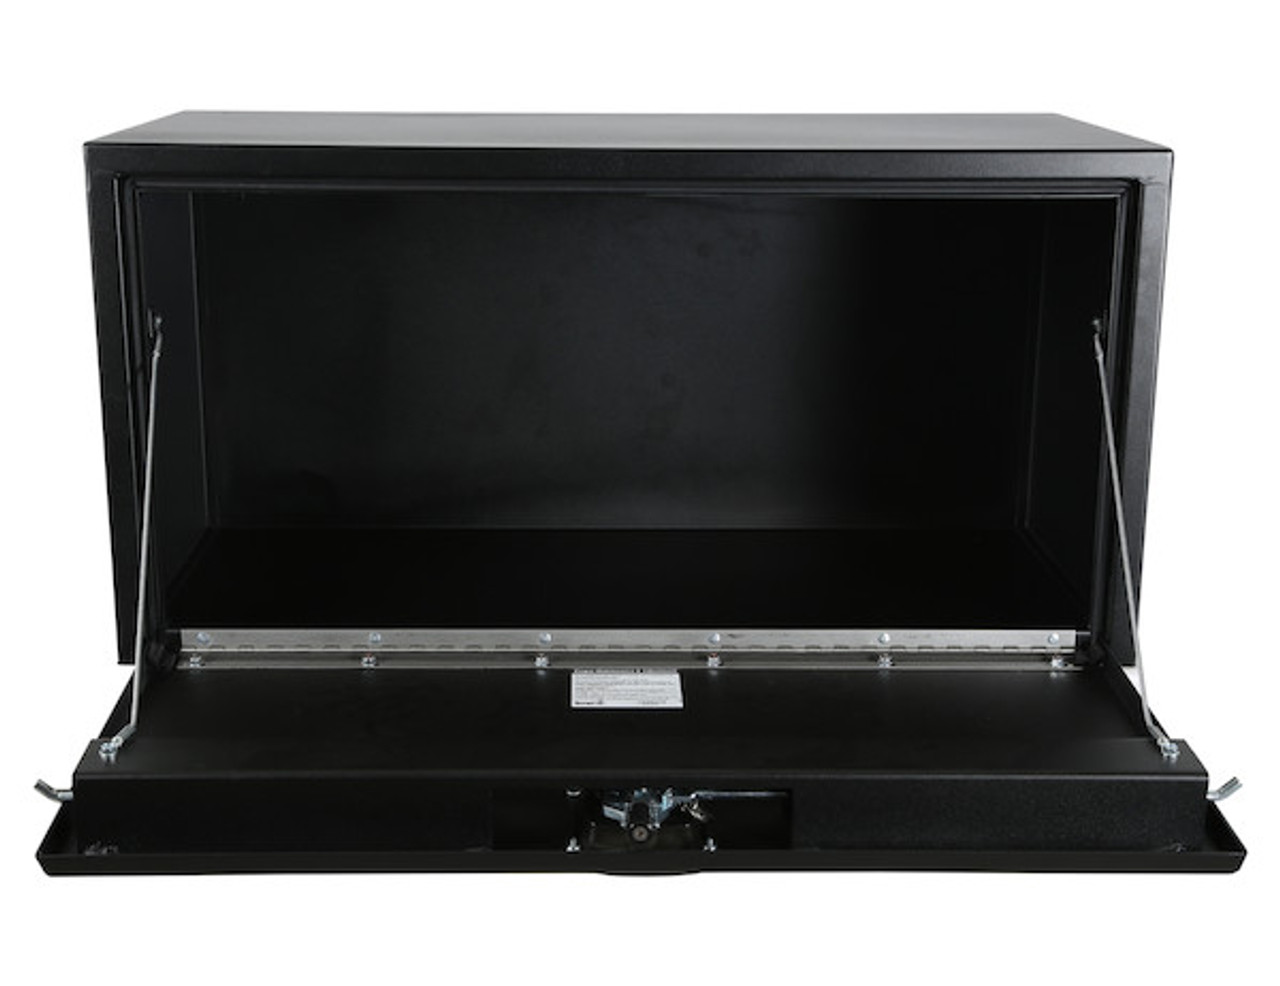 "1734503 BUYERS PRODUCTS TEXTURED MATTE BLACK STEEL UNDERBODY TRUCK TOOLBOX WITH 3-POINT LATCH 24""Hx24""Dx30""W  Picture # 5"